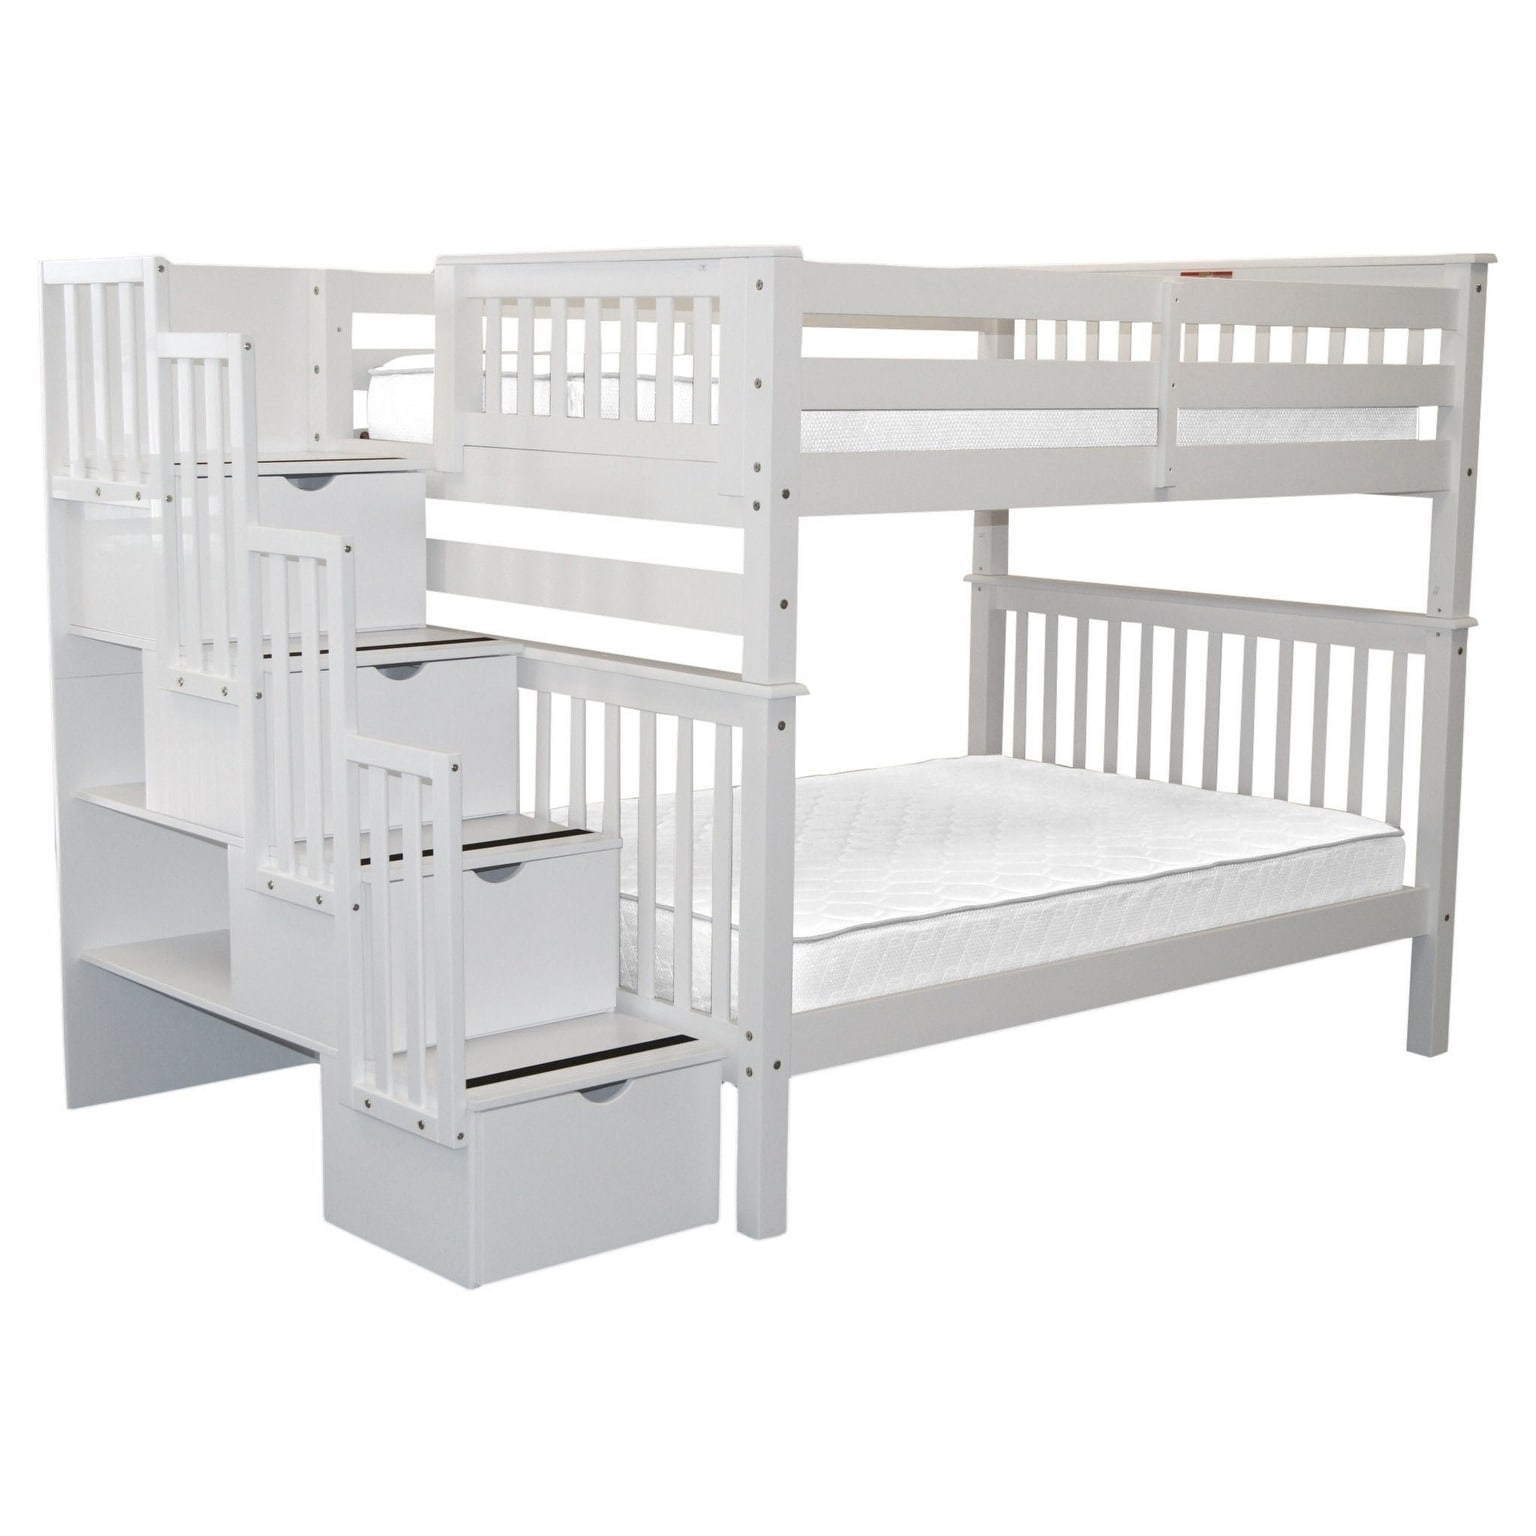 Bedz King Stairway Bunk Beds Full Over Full With 4 Drawers In The Steps White Overstock 22669718